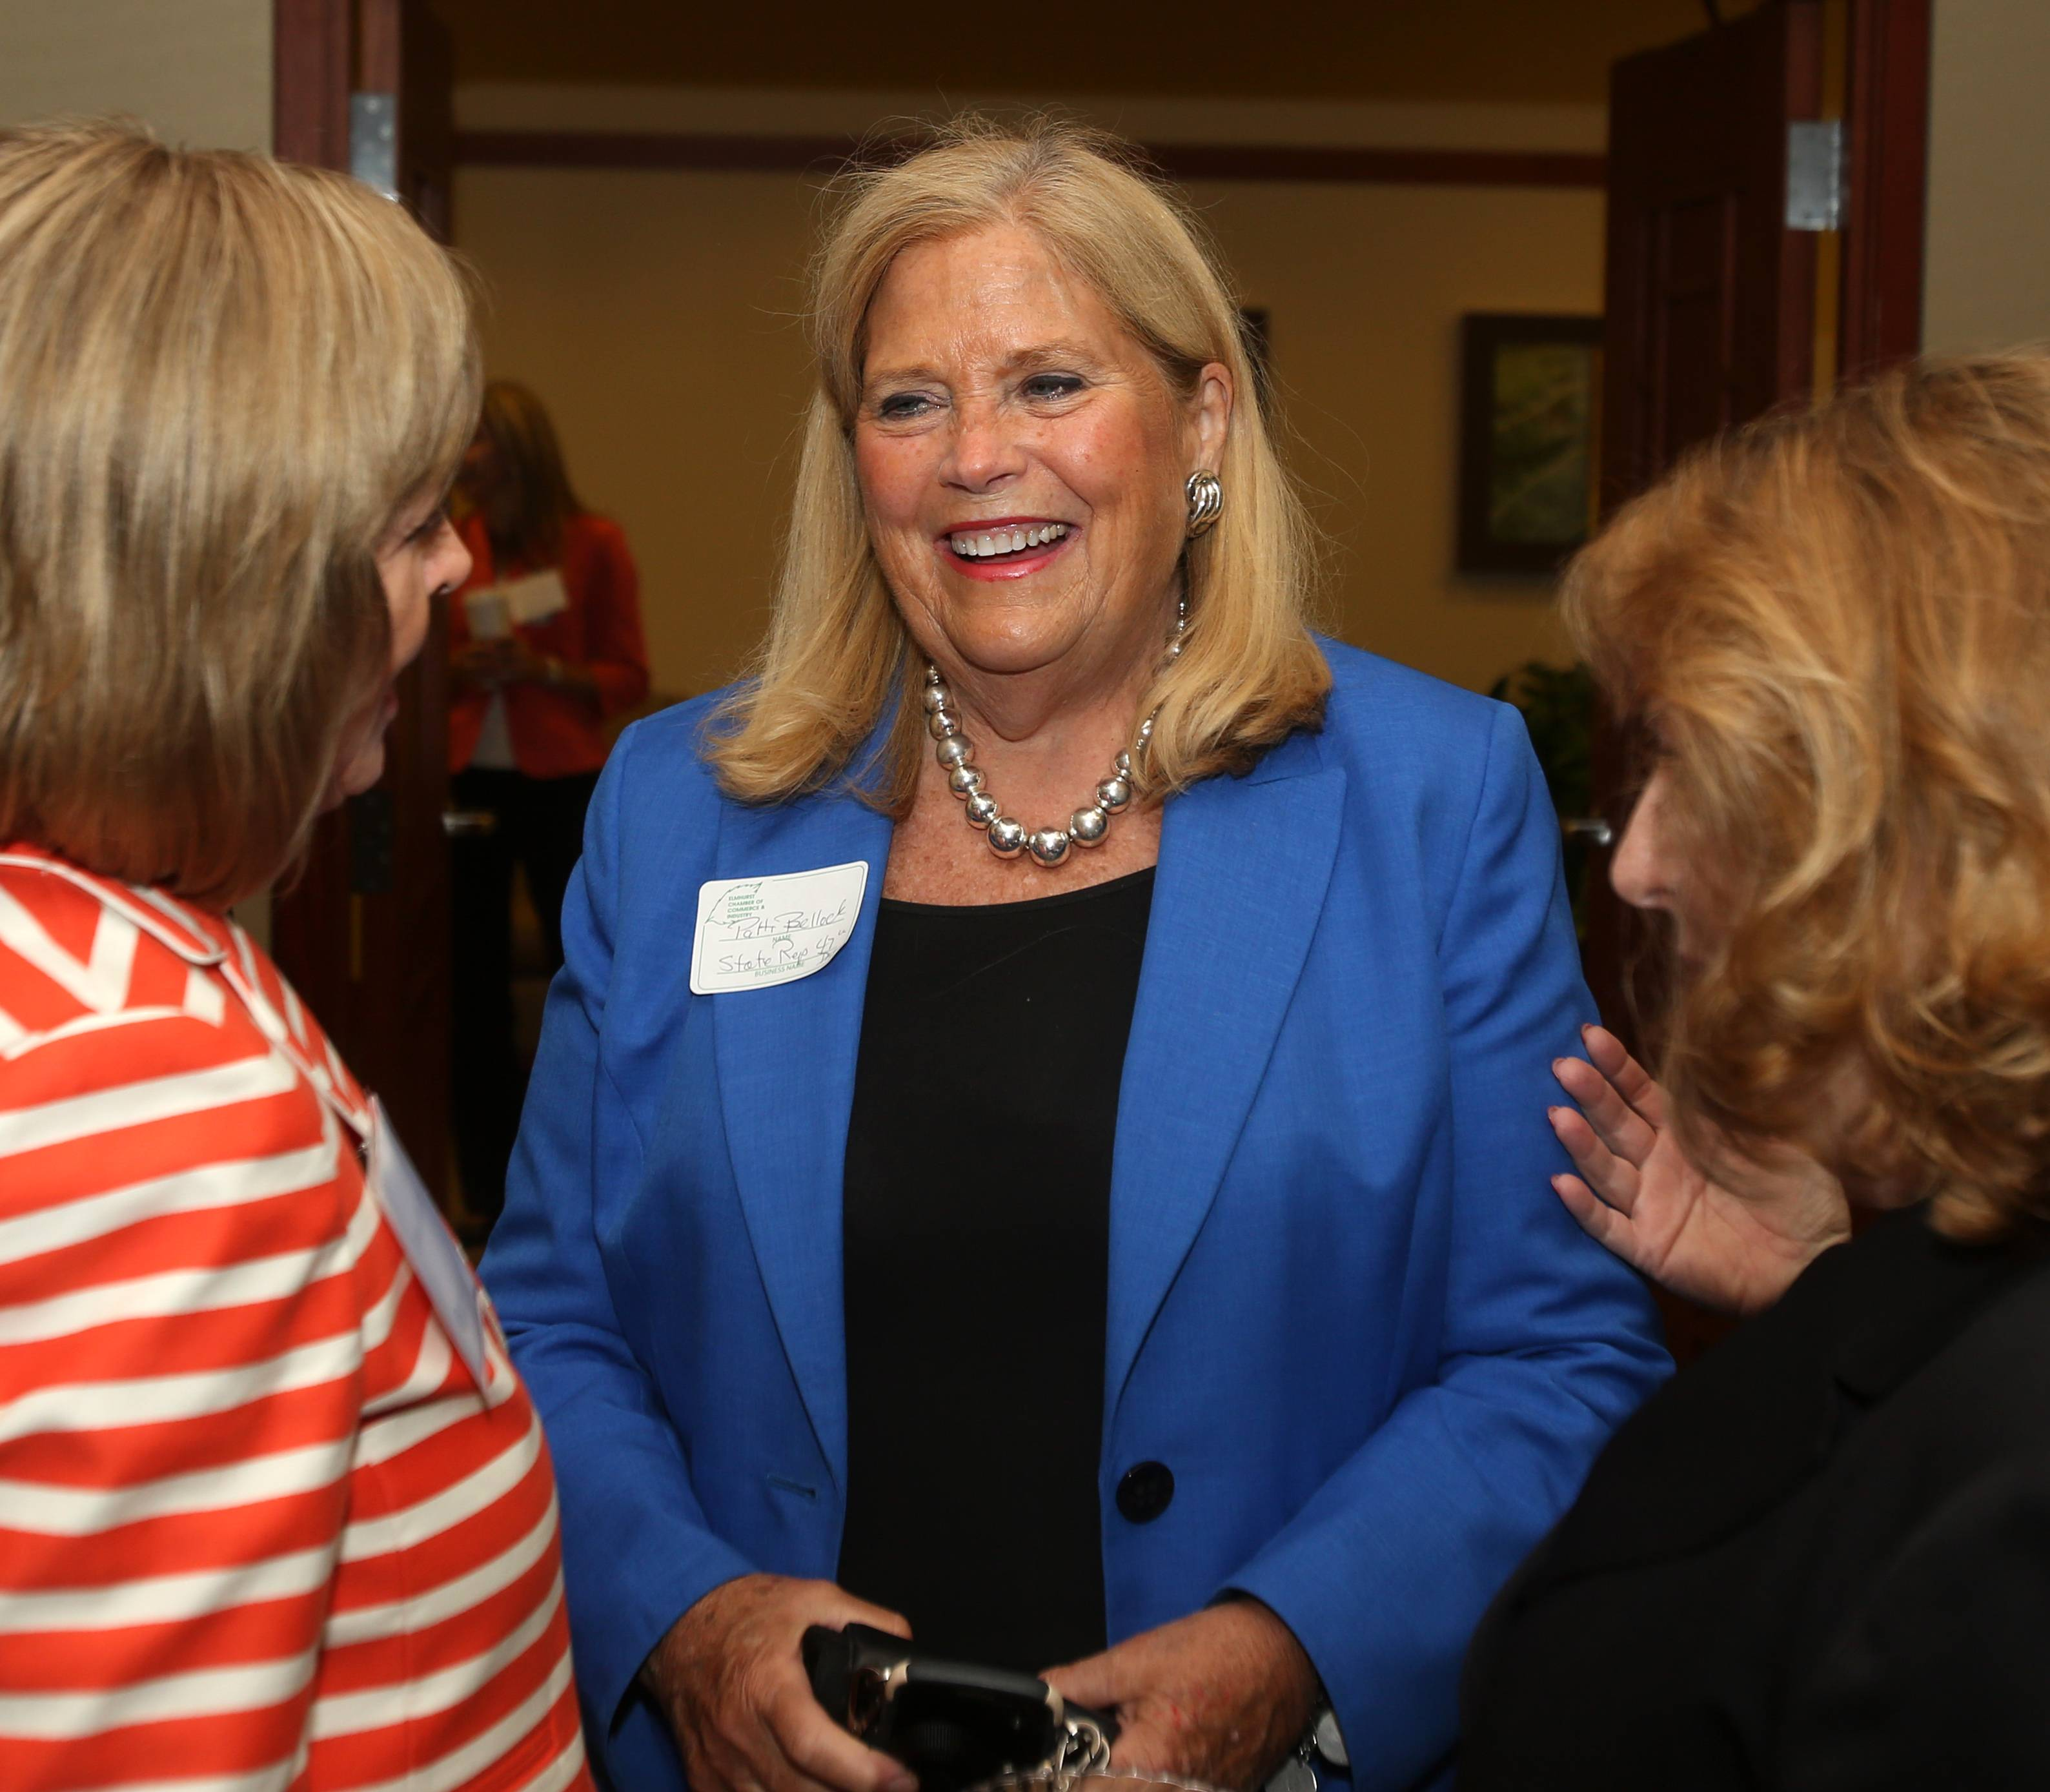 State Rep. Patti Bellock of Hinsdale, attending an Elmhurst Chamber of Commerce event, is the new deputy leader of the Illinois House GOP.